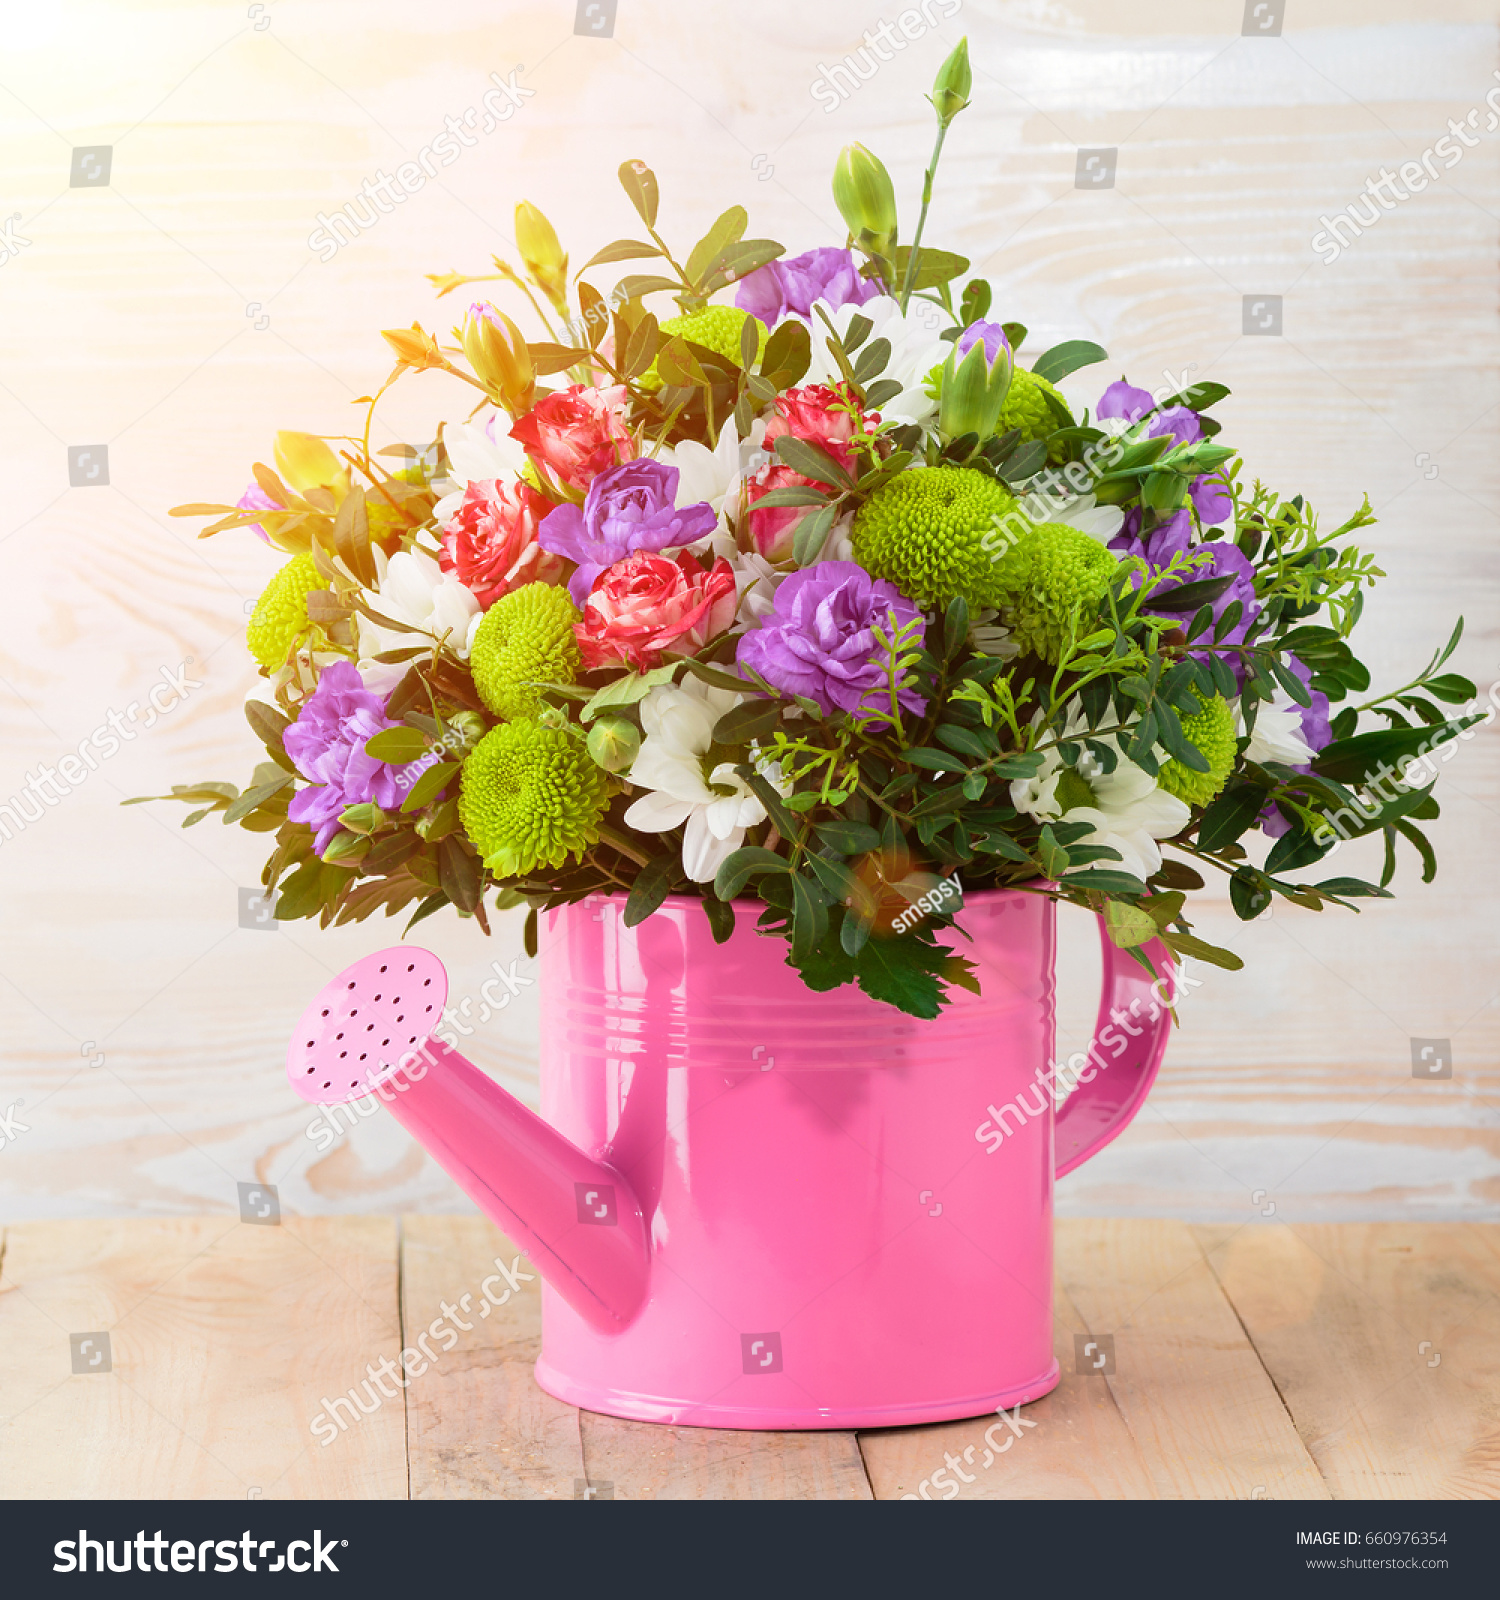 Beautiful bouquet of pink purple and white flowers in pink watering beautiful bouquet of pink purple and white flowers in pink watering can on wooden table wood background ez canvas izmirmasajfo